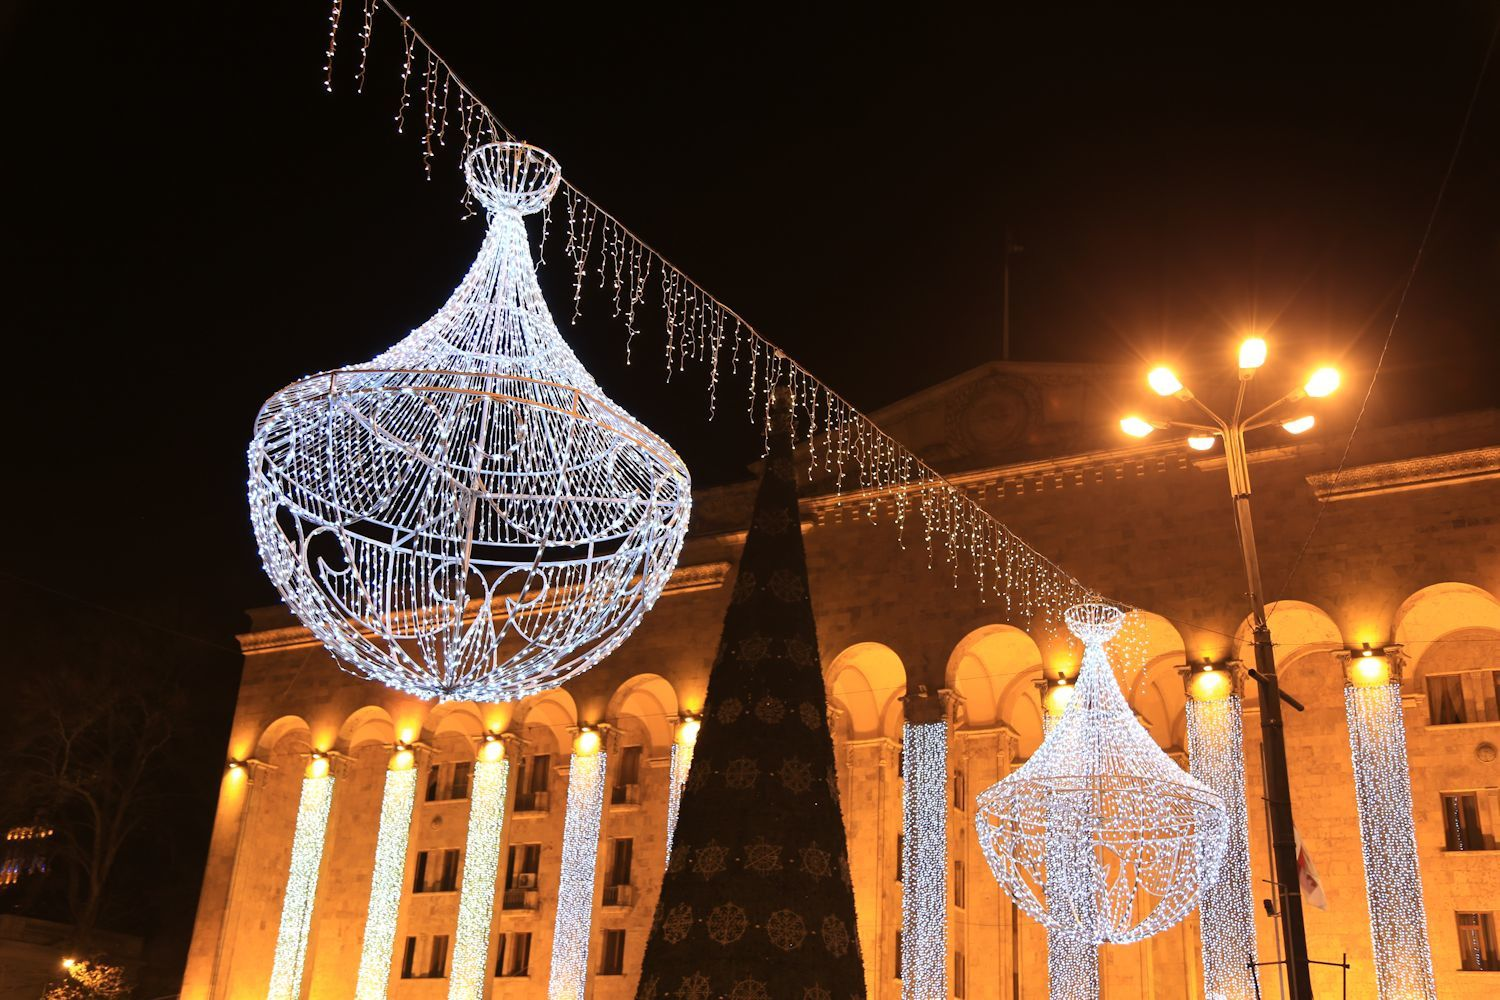 Merry Christmas from Tbilisi